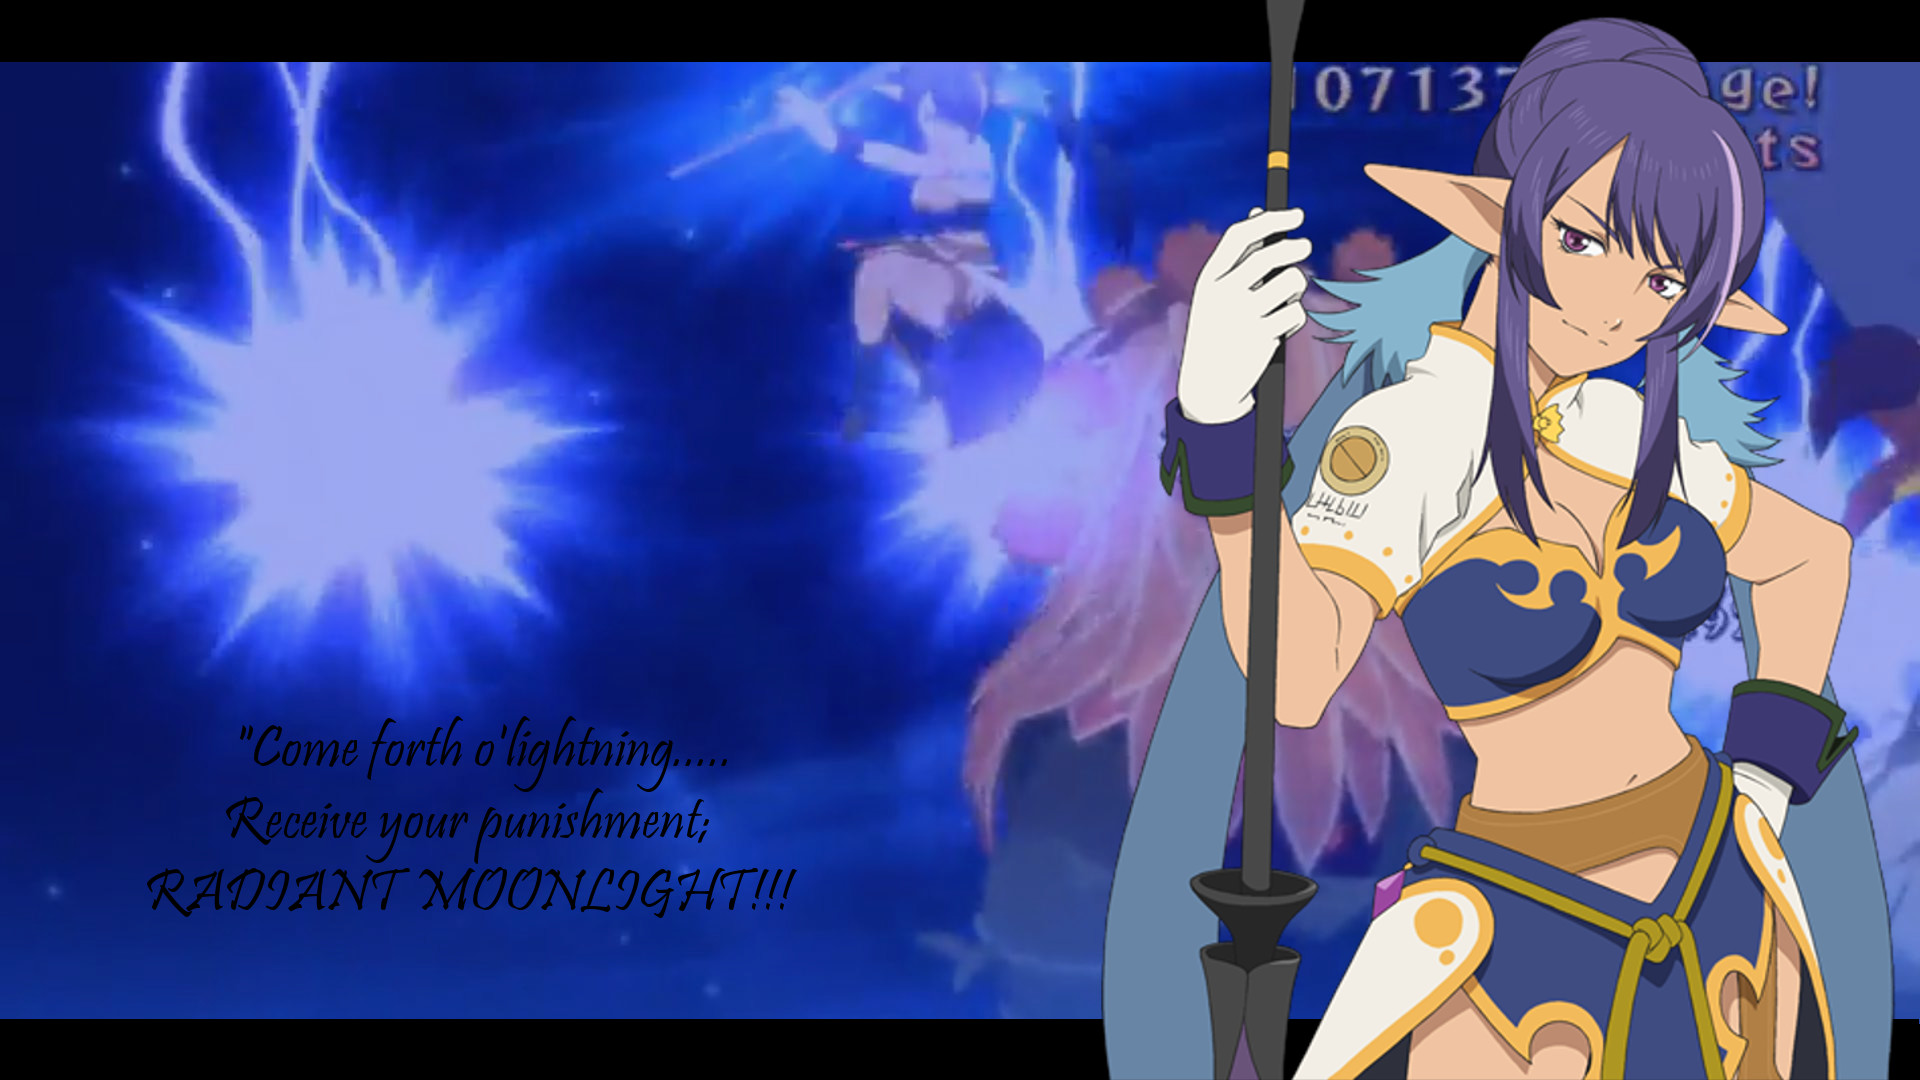 Tales Of Vesperia Wallpaper 67 Images